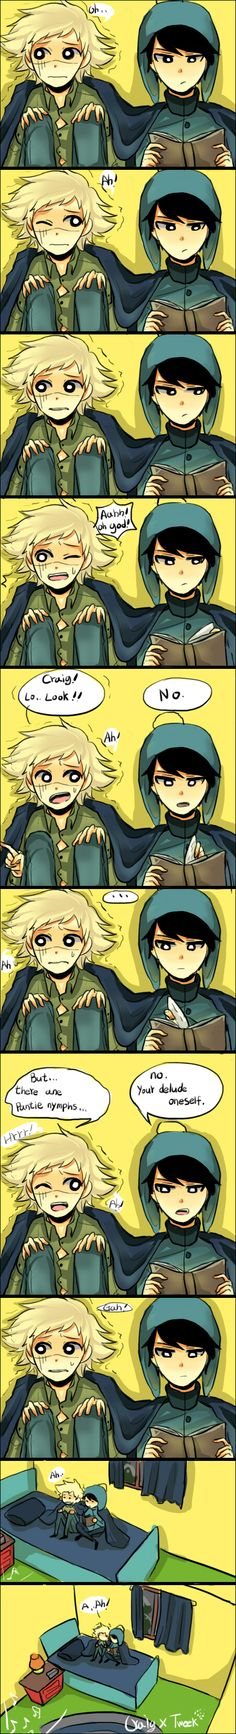 South Park : Craig X Tweek 10 by sujk0823.deviantart.com on @DeviantArt